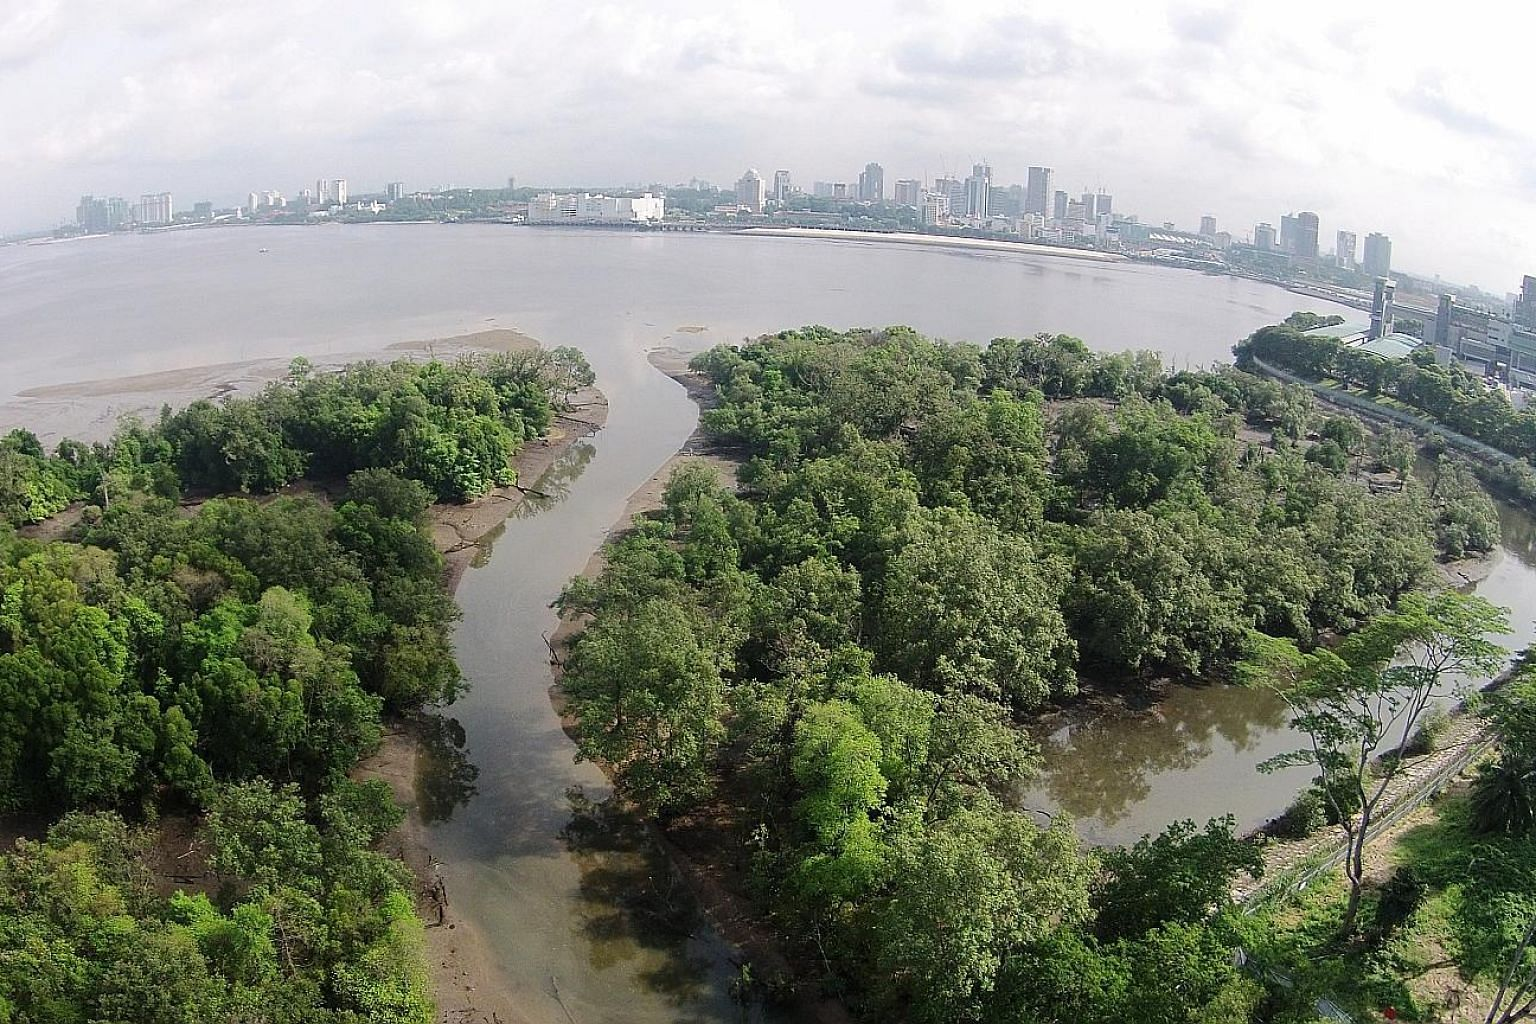 An aerial view of the Mandai Mangrove and Mudflat, which will be designated a nature park. During low tides, the extensive mudflat provides a rich feeding ground for birds. The move to conserve the mudflat was hailed by nature groups as an important